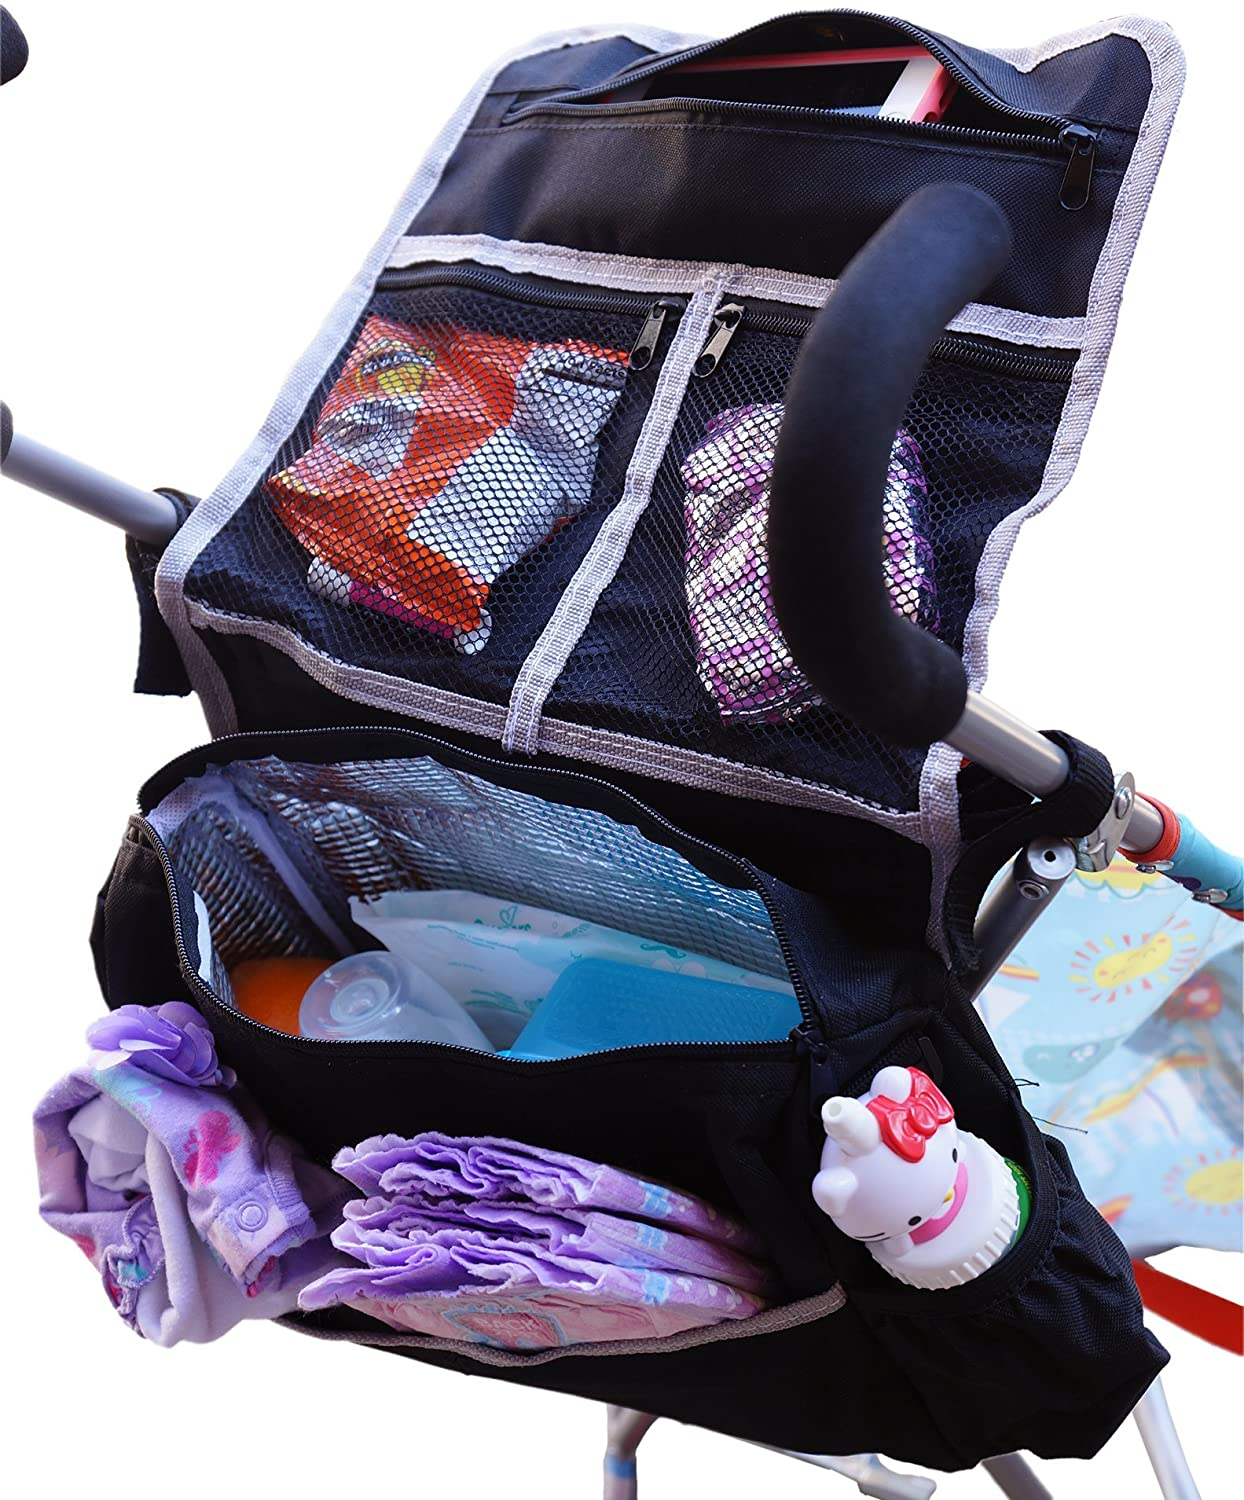 NONIKA 5-in-1 Child and Infant Insulated Stroller Bag & Backseat Car Storage Organizer (Black)